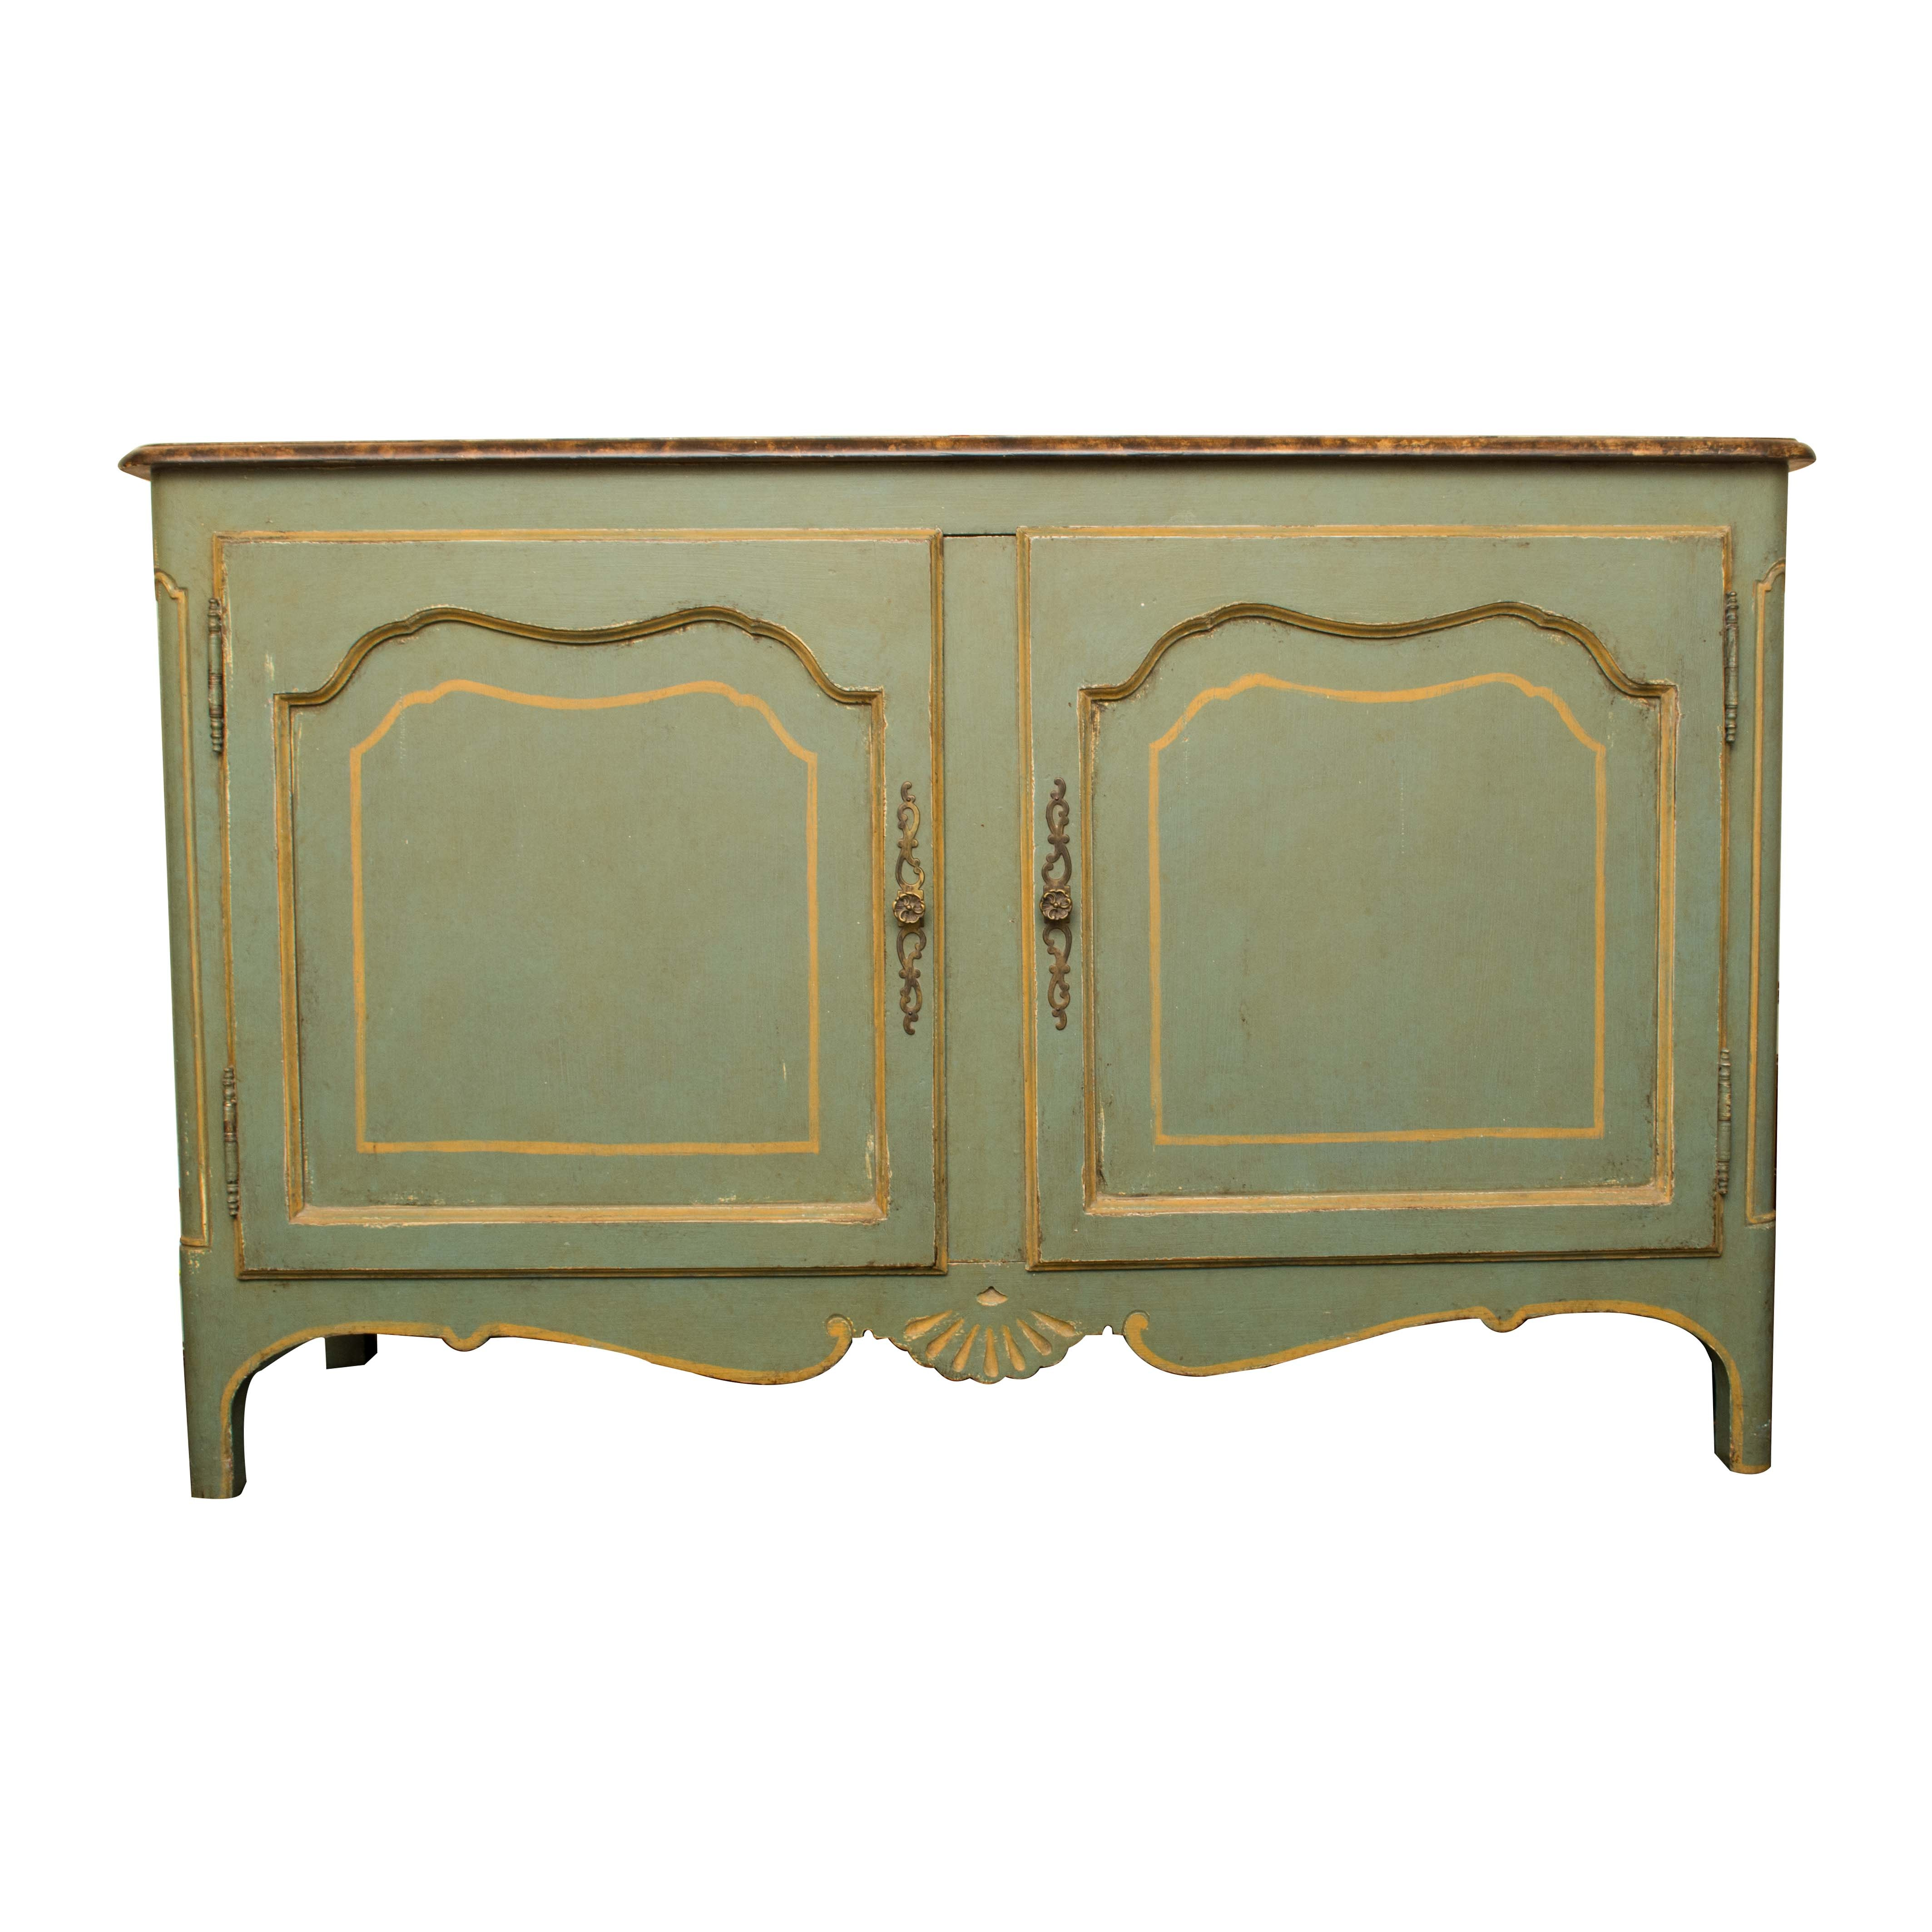 French Provincial Style Buffet with Stone Top